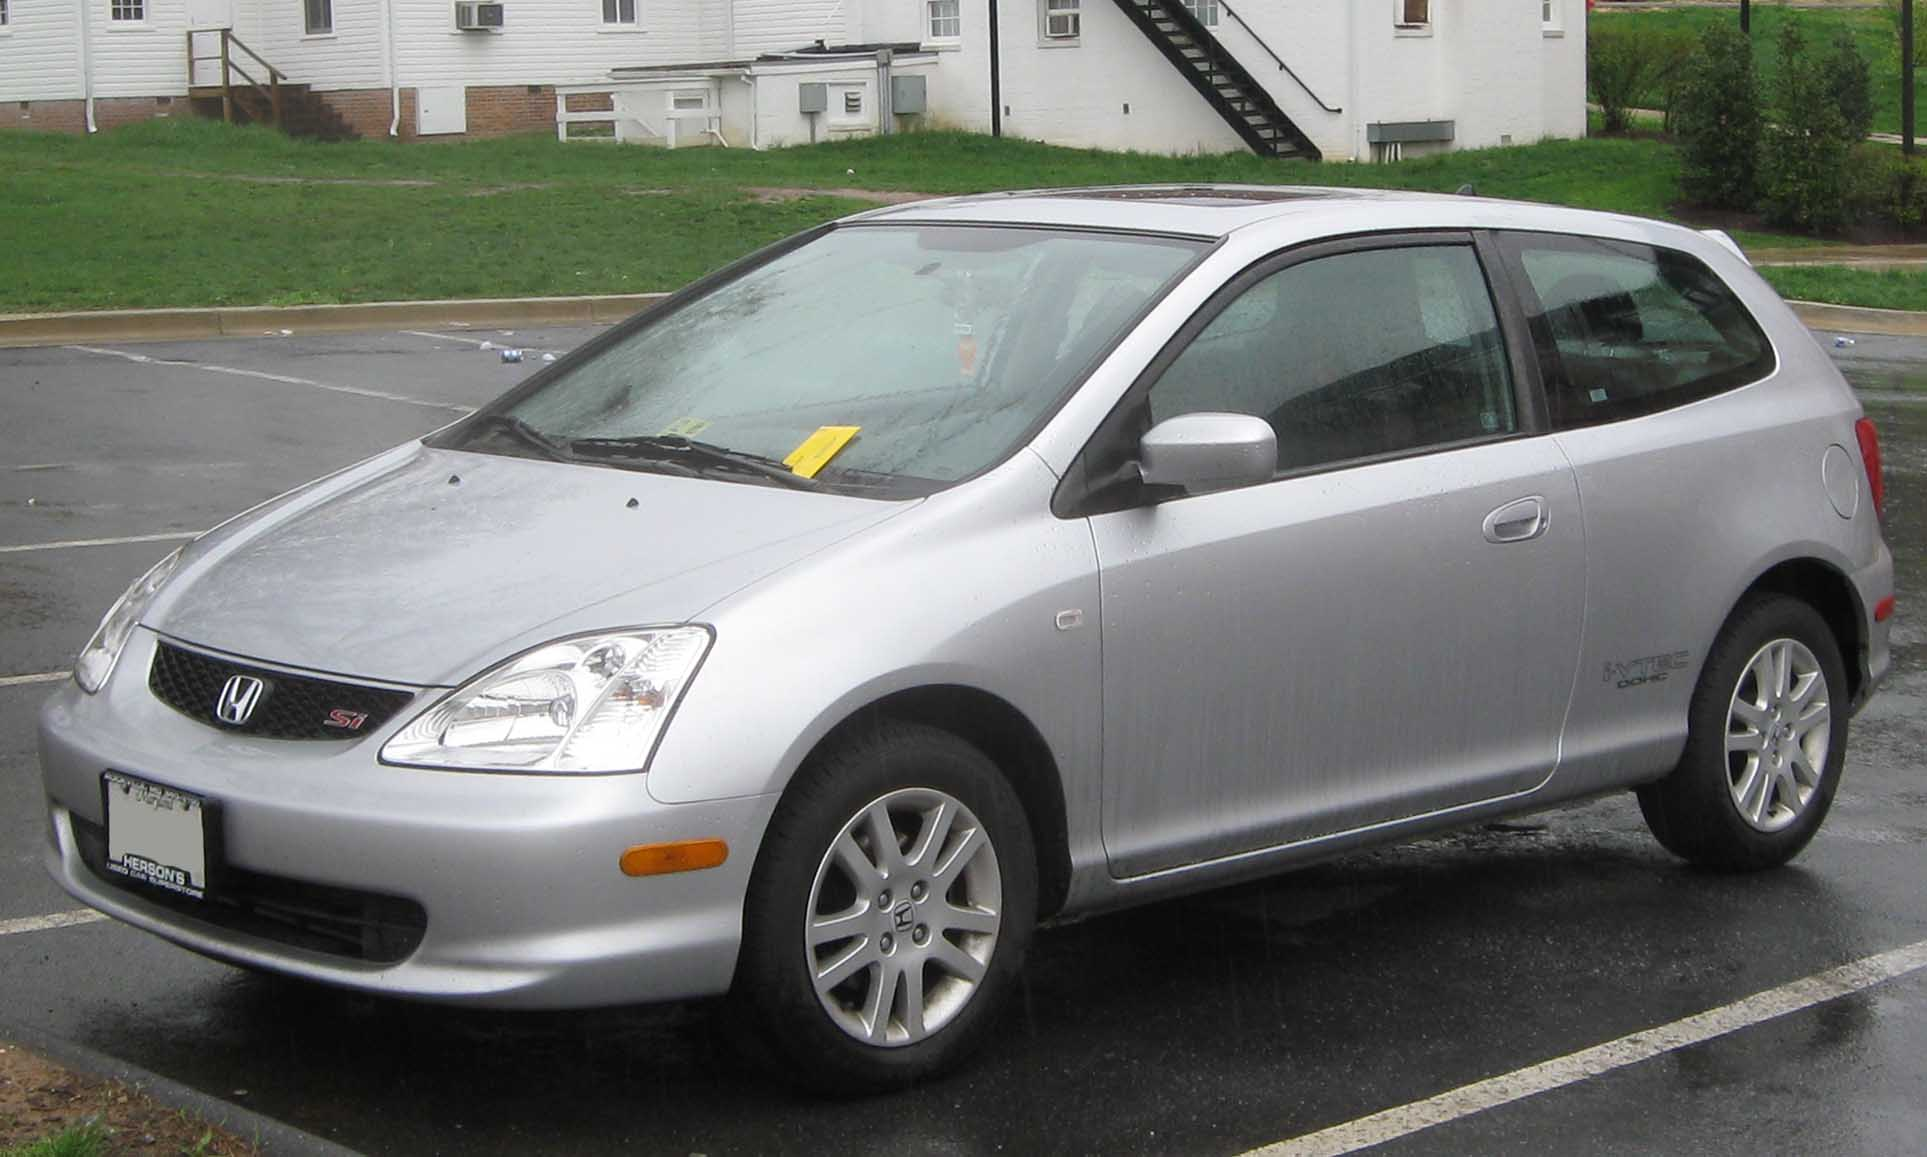 Pictures Of Honda Civic Vii 2002 #8